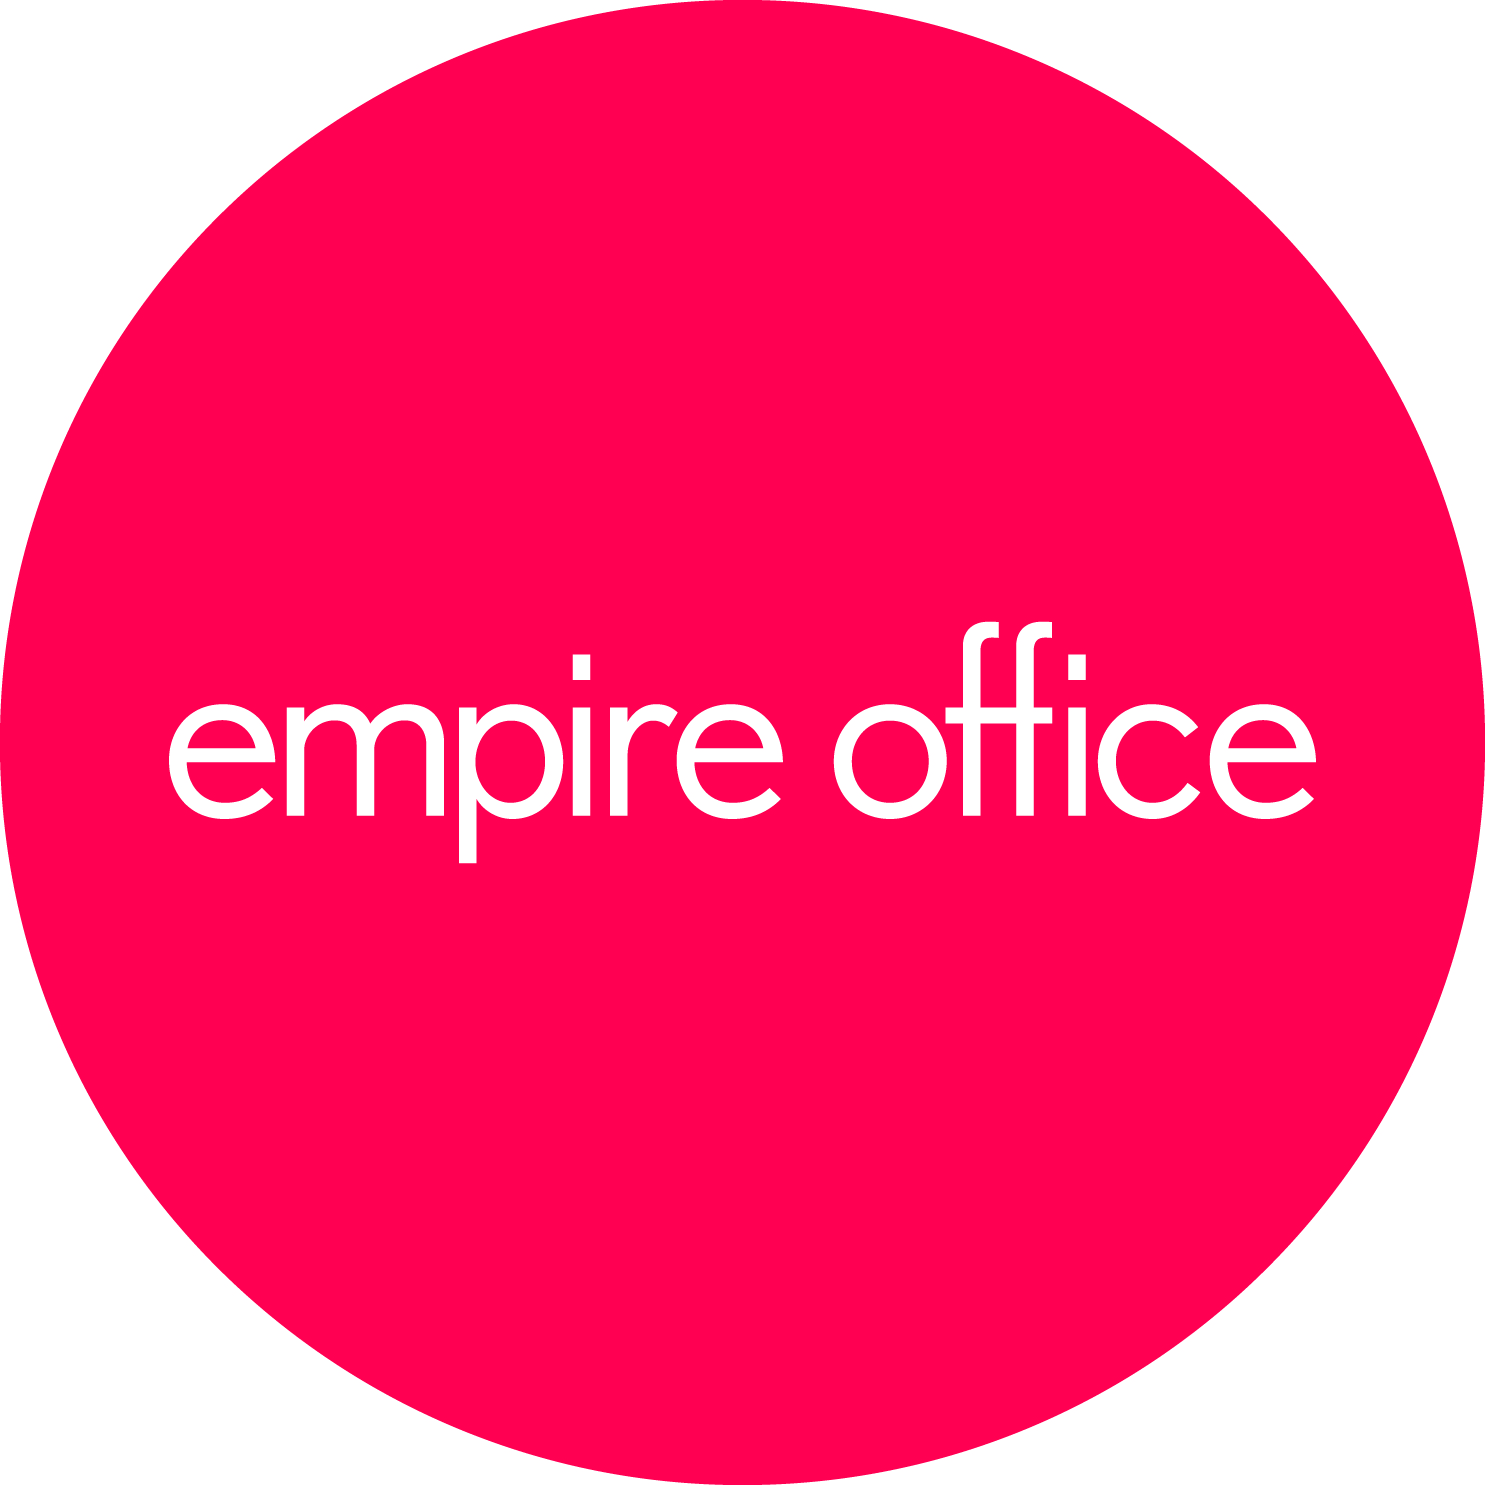 Leading Commercial Furniture Dealer Empire Office Acquires